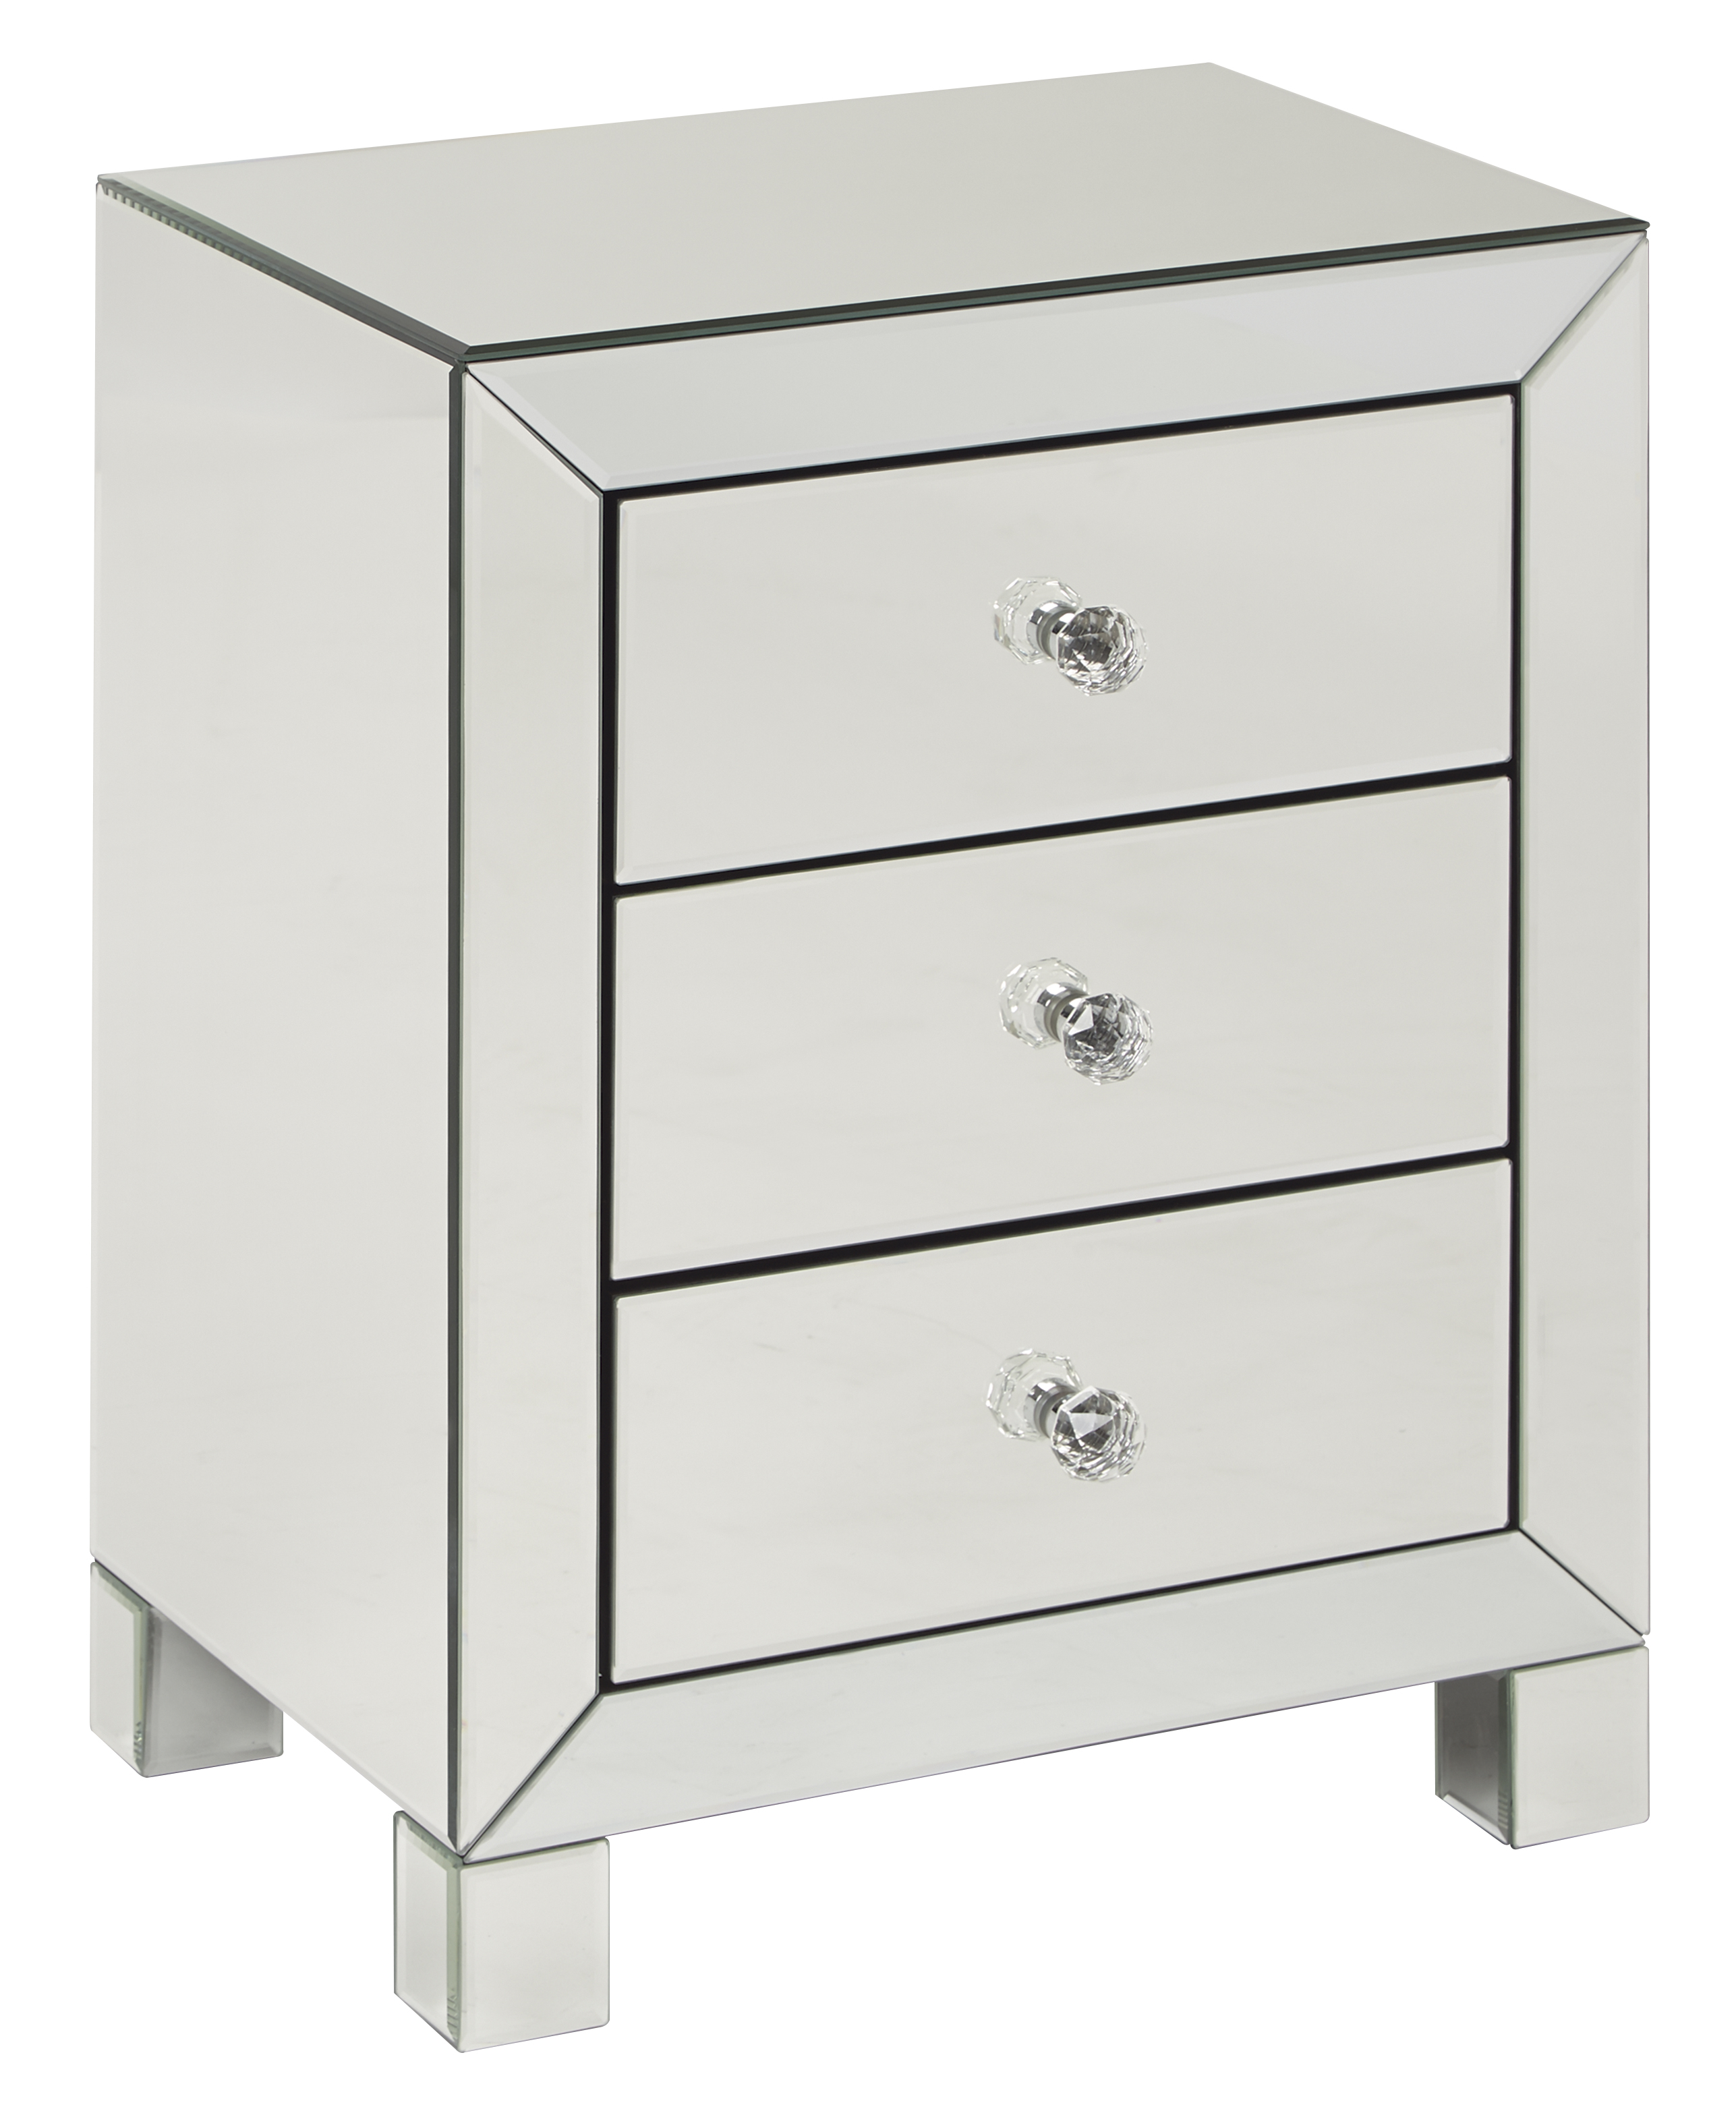 Reflections 3 Drawer Accent Table - [REF173-SLV]